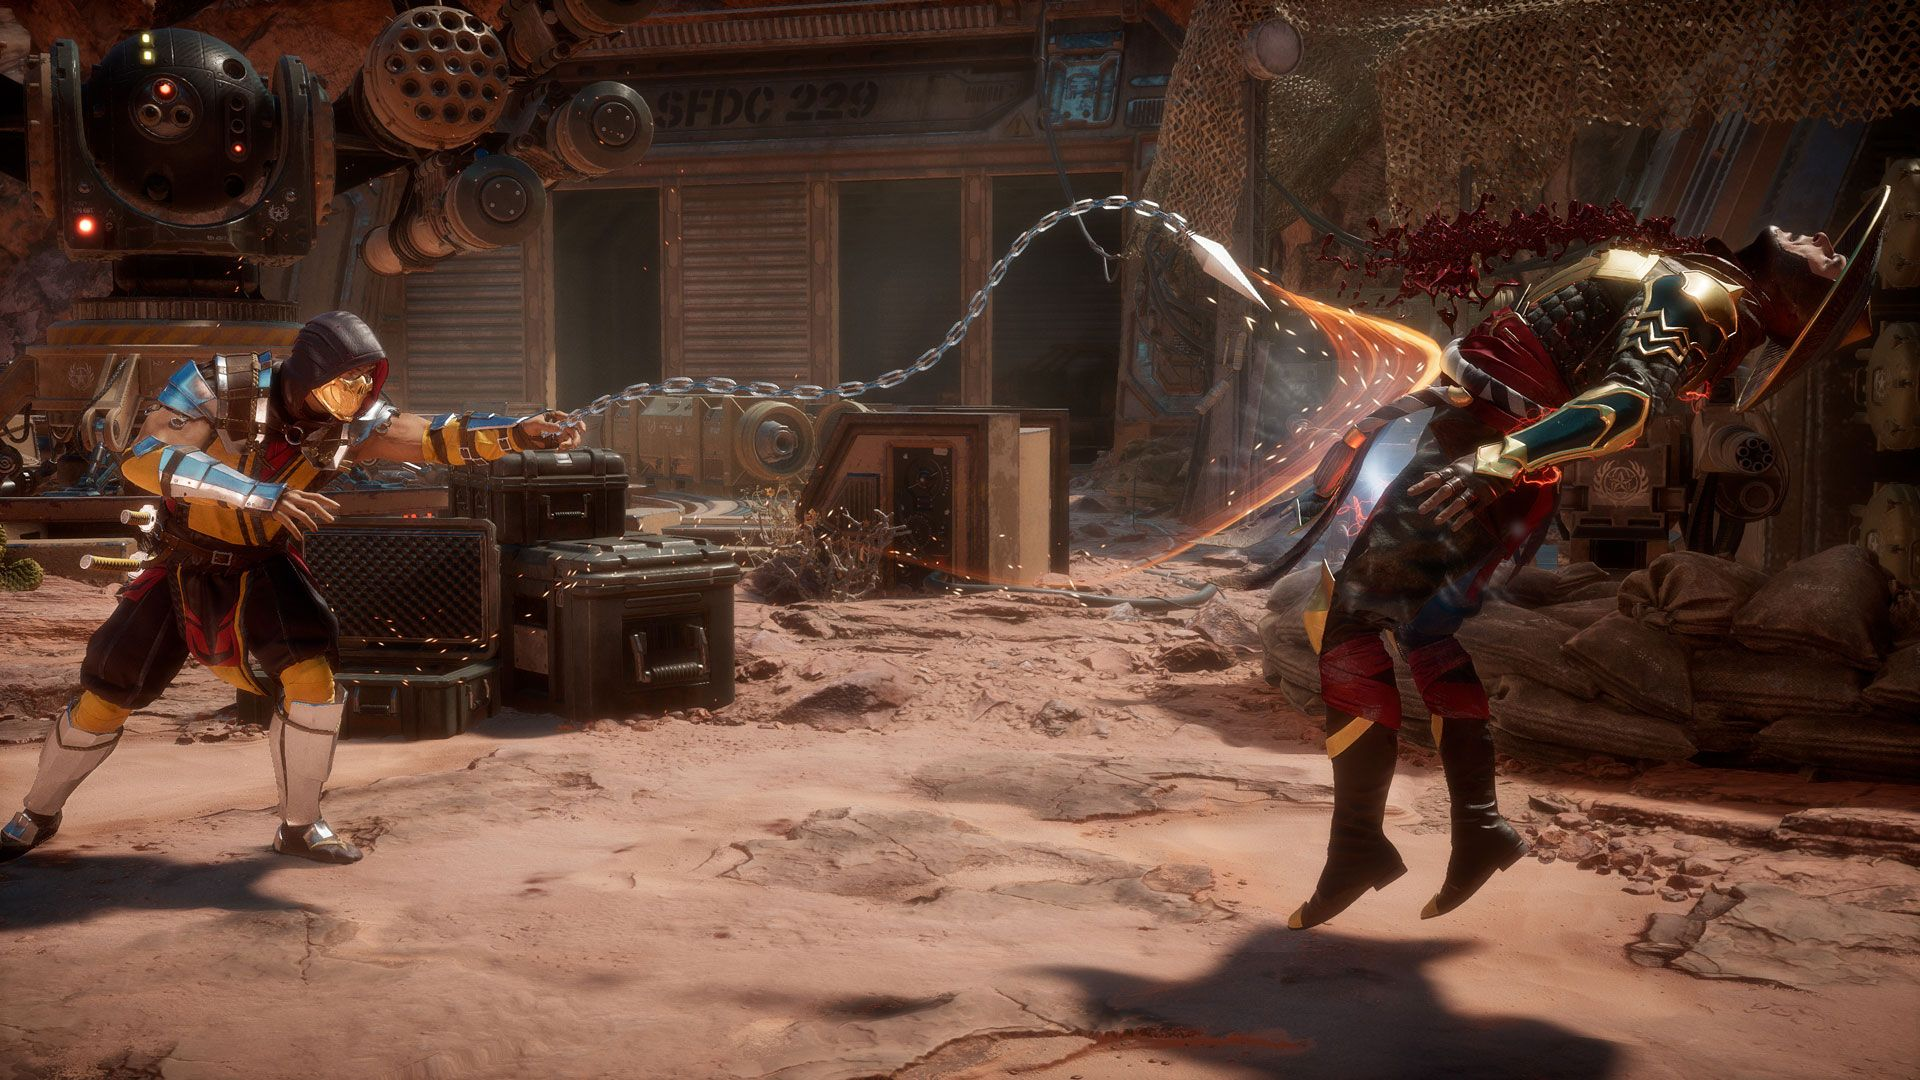 Mortal Kombat 11 Basics How To Fight And Use New Features